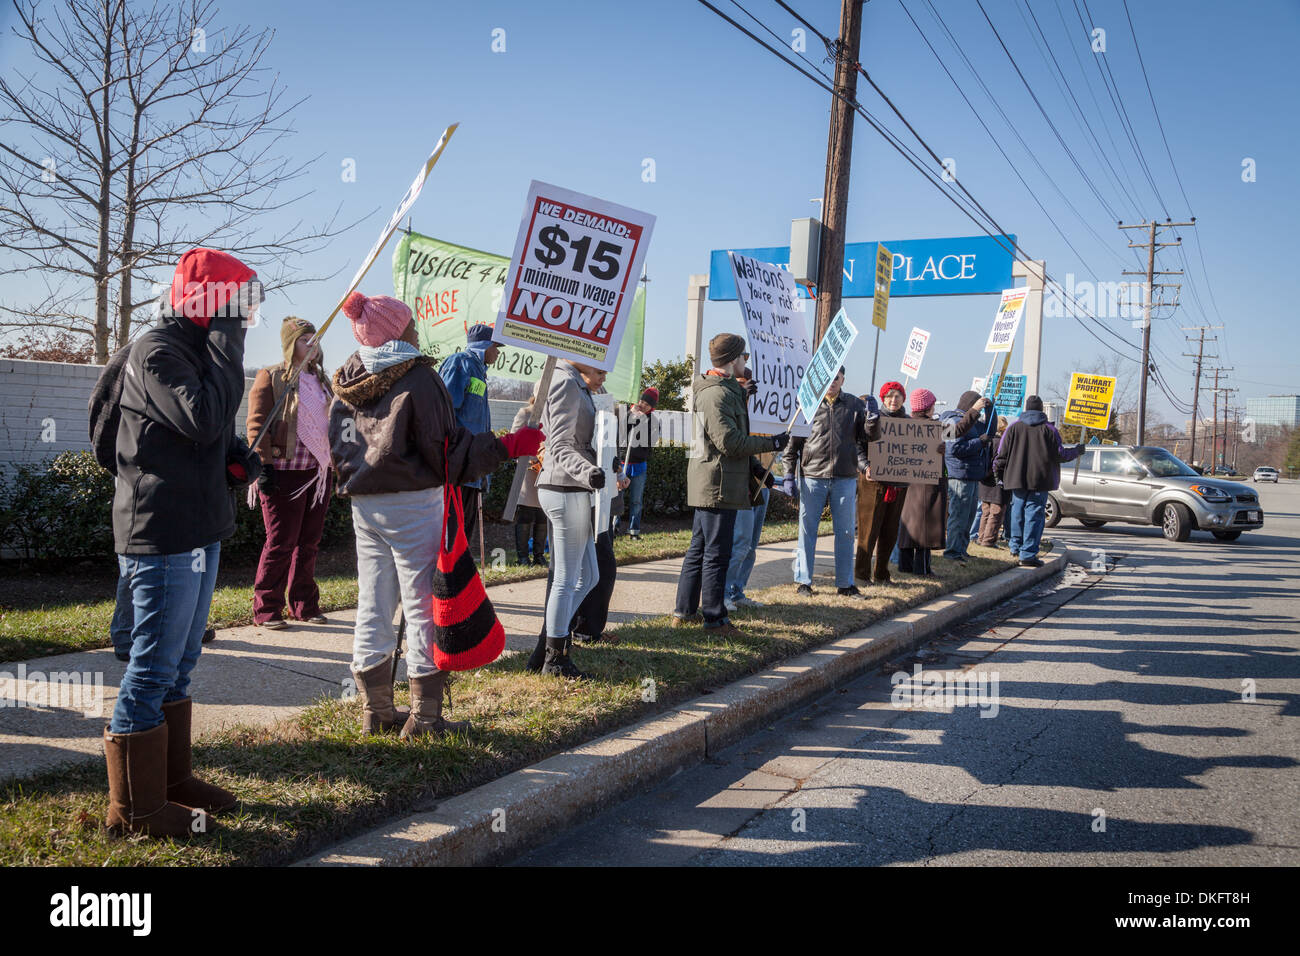 Black Friday anti-Walmart protest, supporting living wage, Towson, Maryland, Baltimore County. - Stock Image